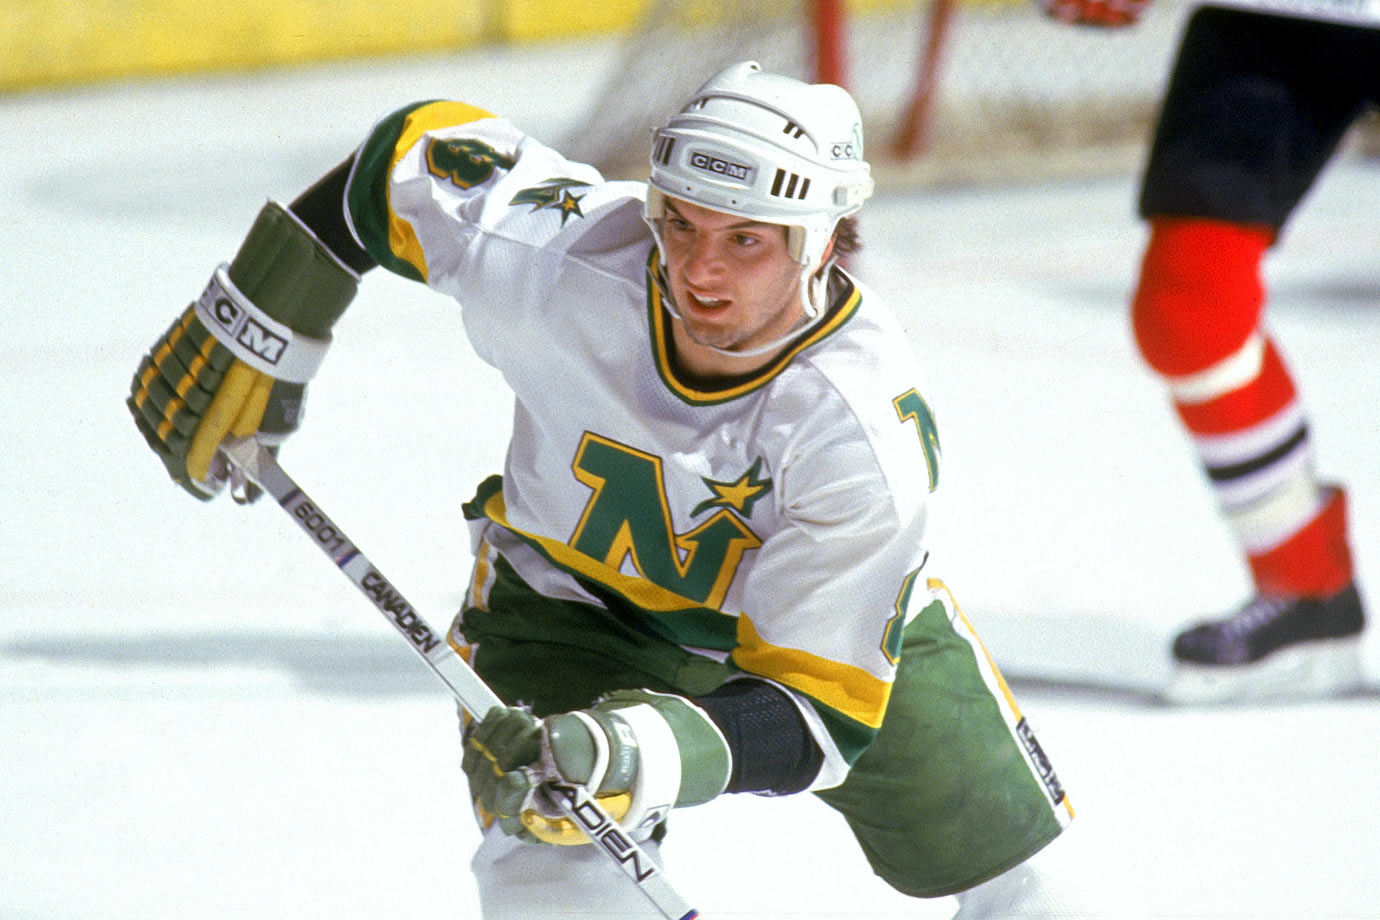 Lawton never amounted to much in the NHL, scoring just 266 points in 483 games. His best season came in 1986-87, when he scored 21 goals and 23 assists in 66 games. — Notable picks: No. 2: Sylvain Turgeon, LW, Hartford Whalers | No. 3: Pat LaFontaine, C, New York Islanders | No. 4: Steve Yzerman, C, Detroit Red Wings | No. 5: Tom Barrasso, G, Buffalo Sabres | No. 9: Cam Neely, RW, Boston Bruins | No. 108: Kevin Stevens, LW, Los Angeles Kings | No. 121: Rick Tocchet, RW, Philadelphia Flyers | No. 199: 	Dominik Hasek, G, Chicago Blackhawks